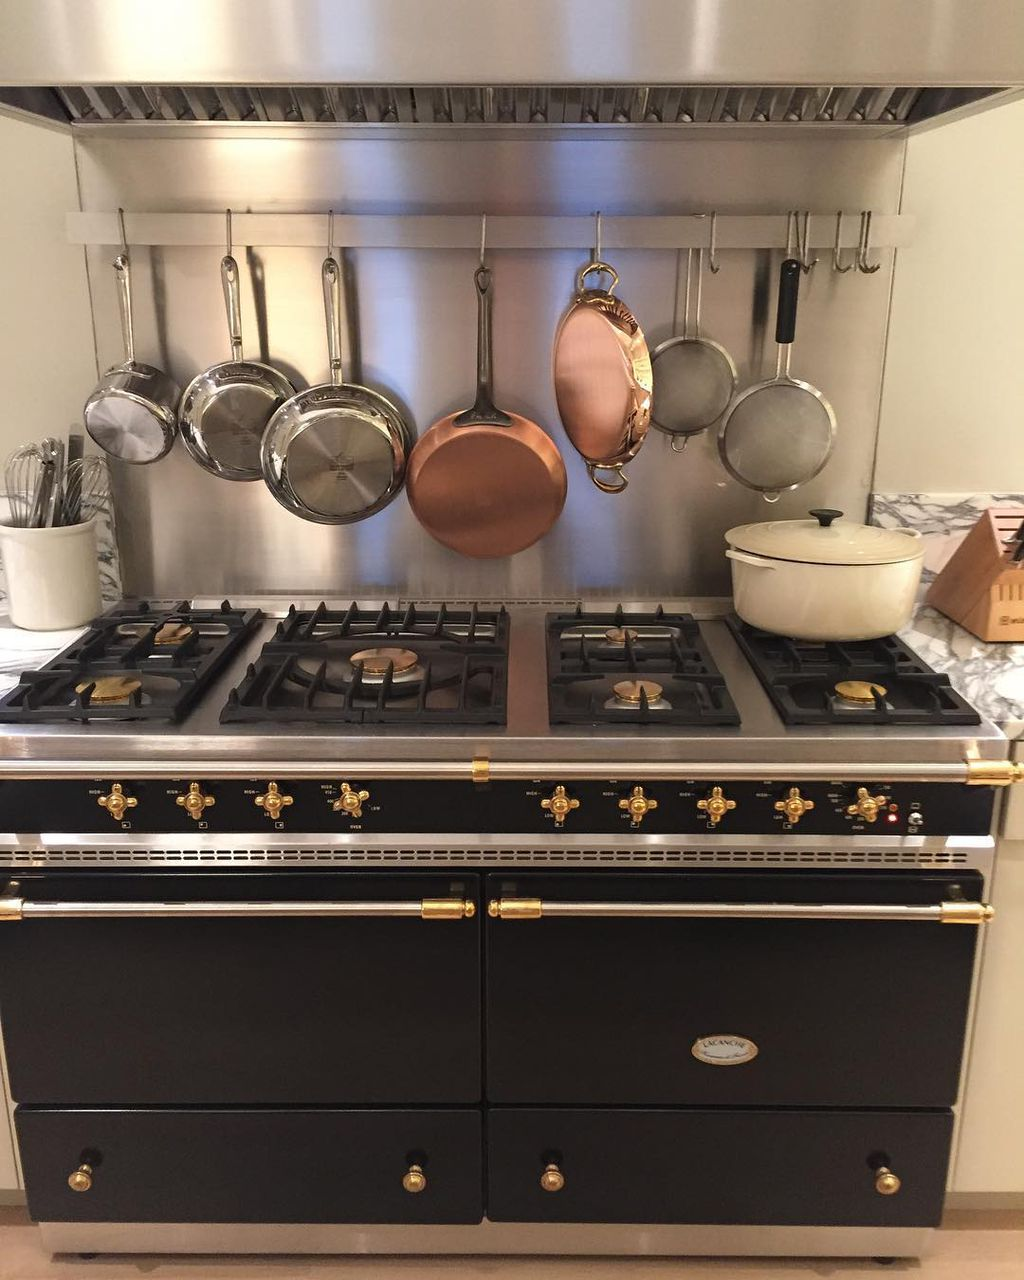 Ina Garten drops $19,000 on custom-built oven for her NYC apartment